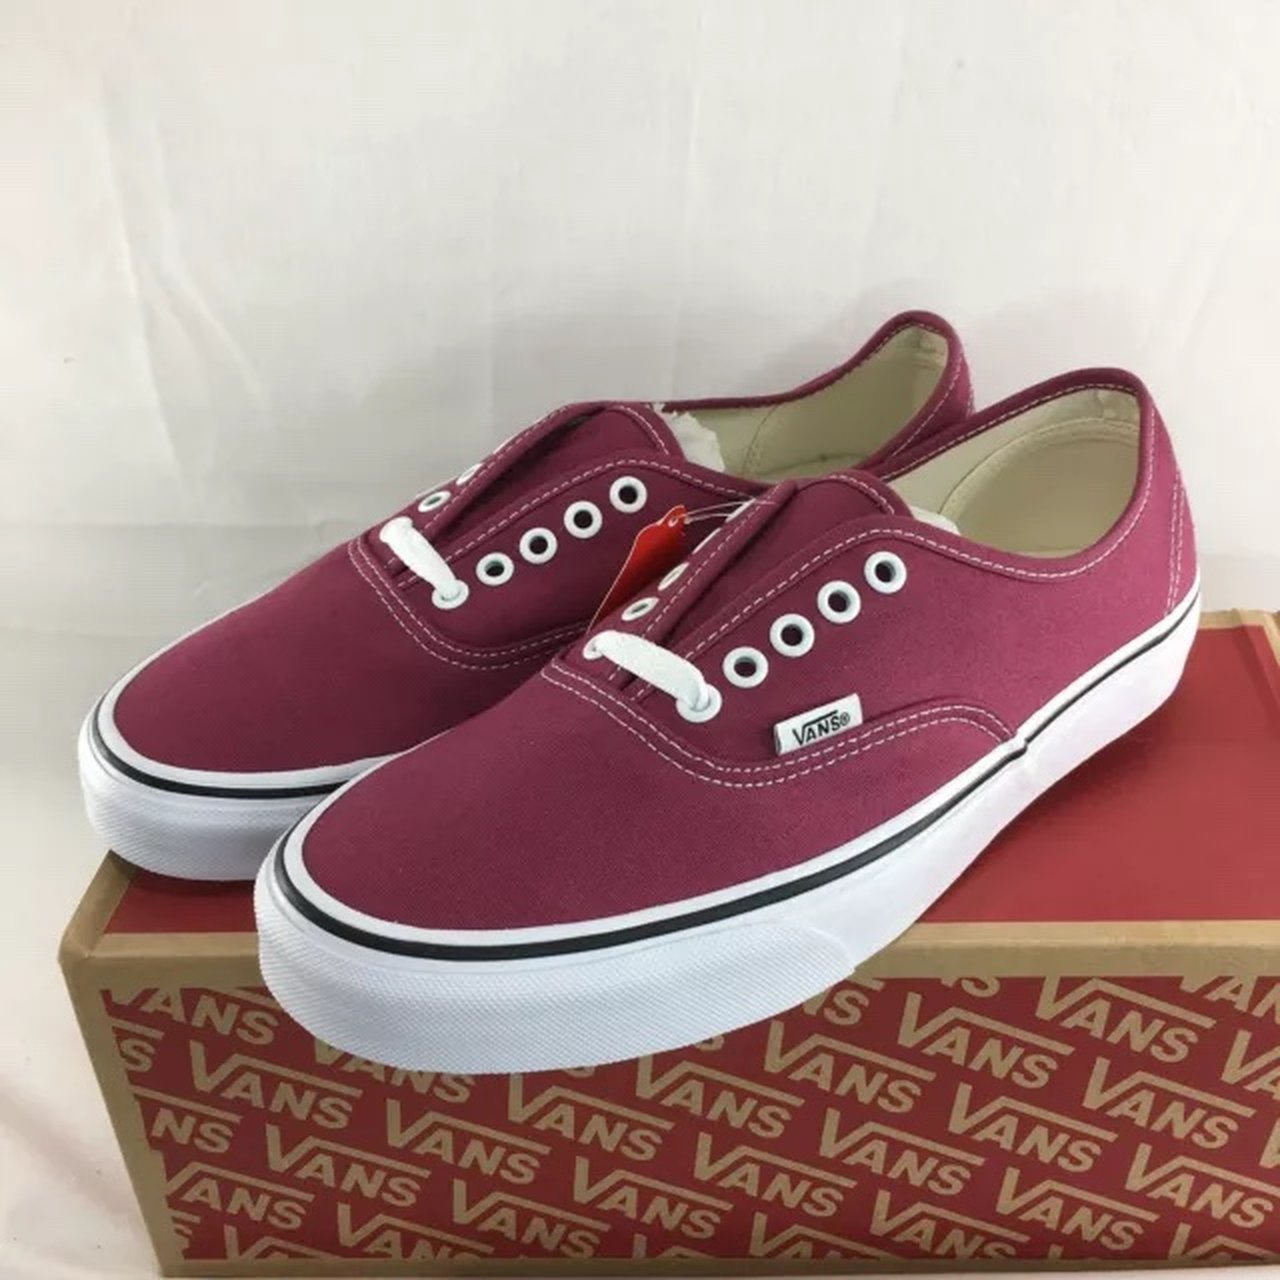 Vans Authentic shoes men u0027s dry rose red new with box skate - Depop